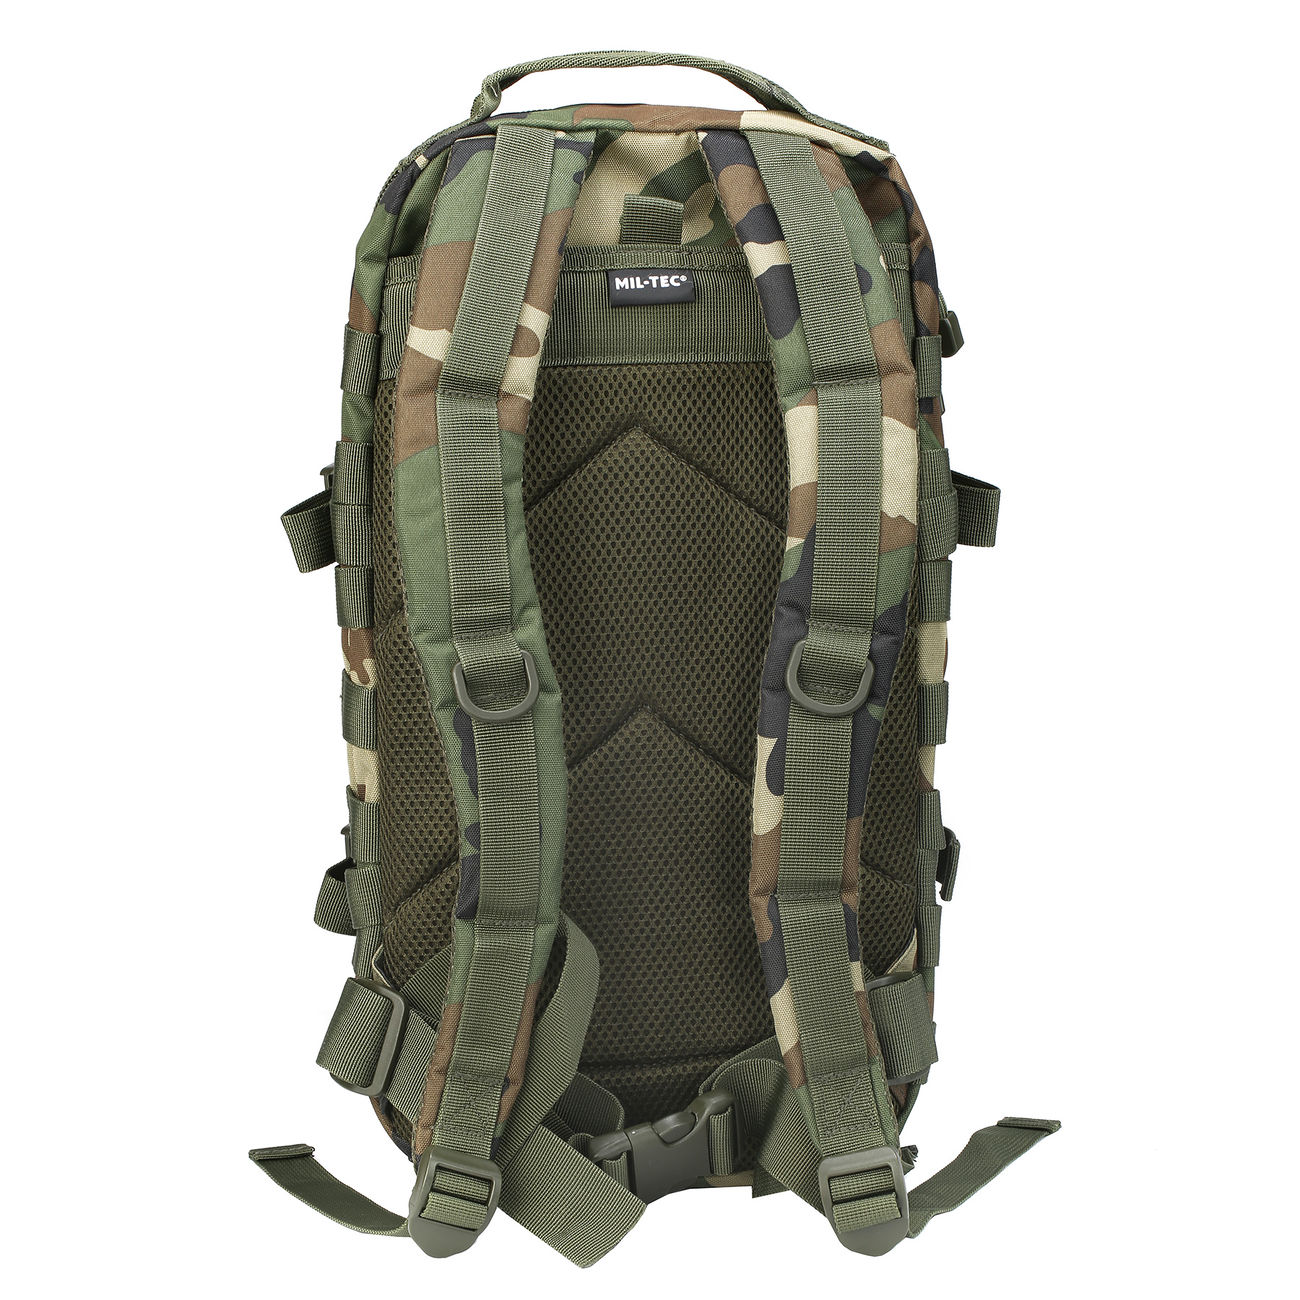 Mil-Tec Rucksack US Assault Pack I 20 Liter woodland 2